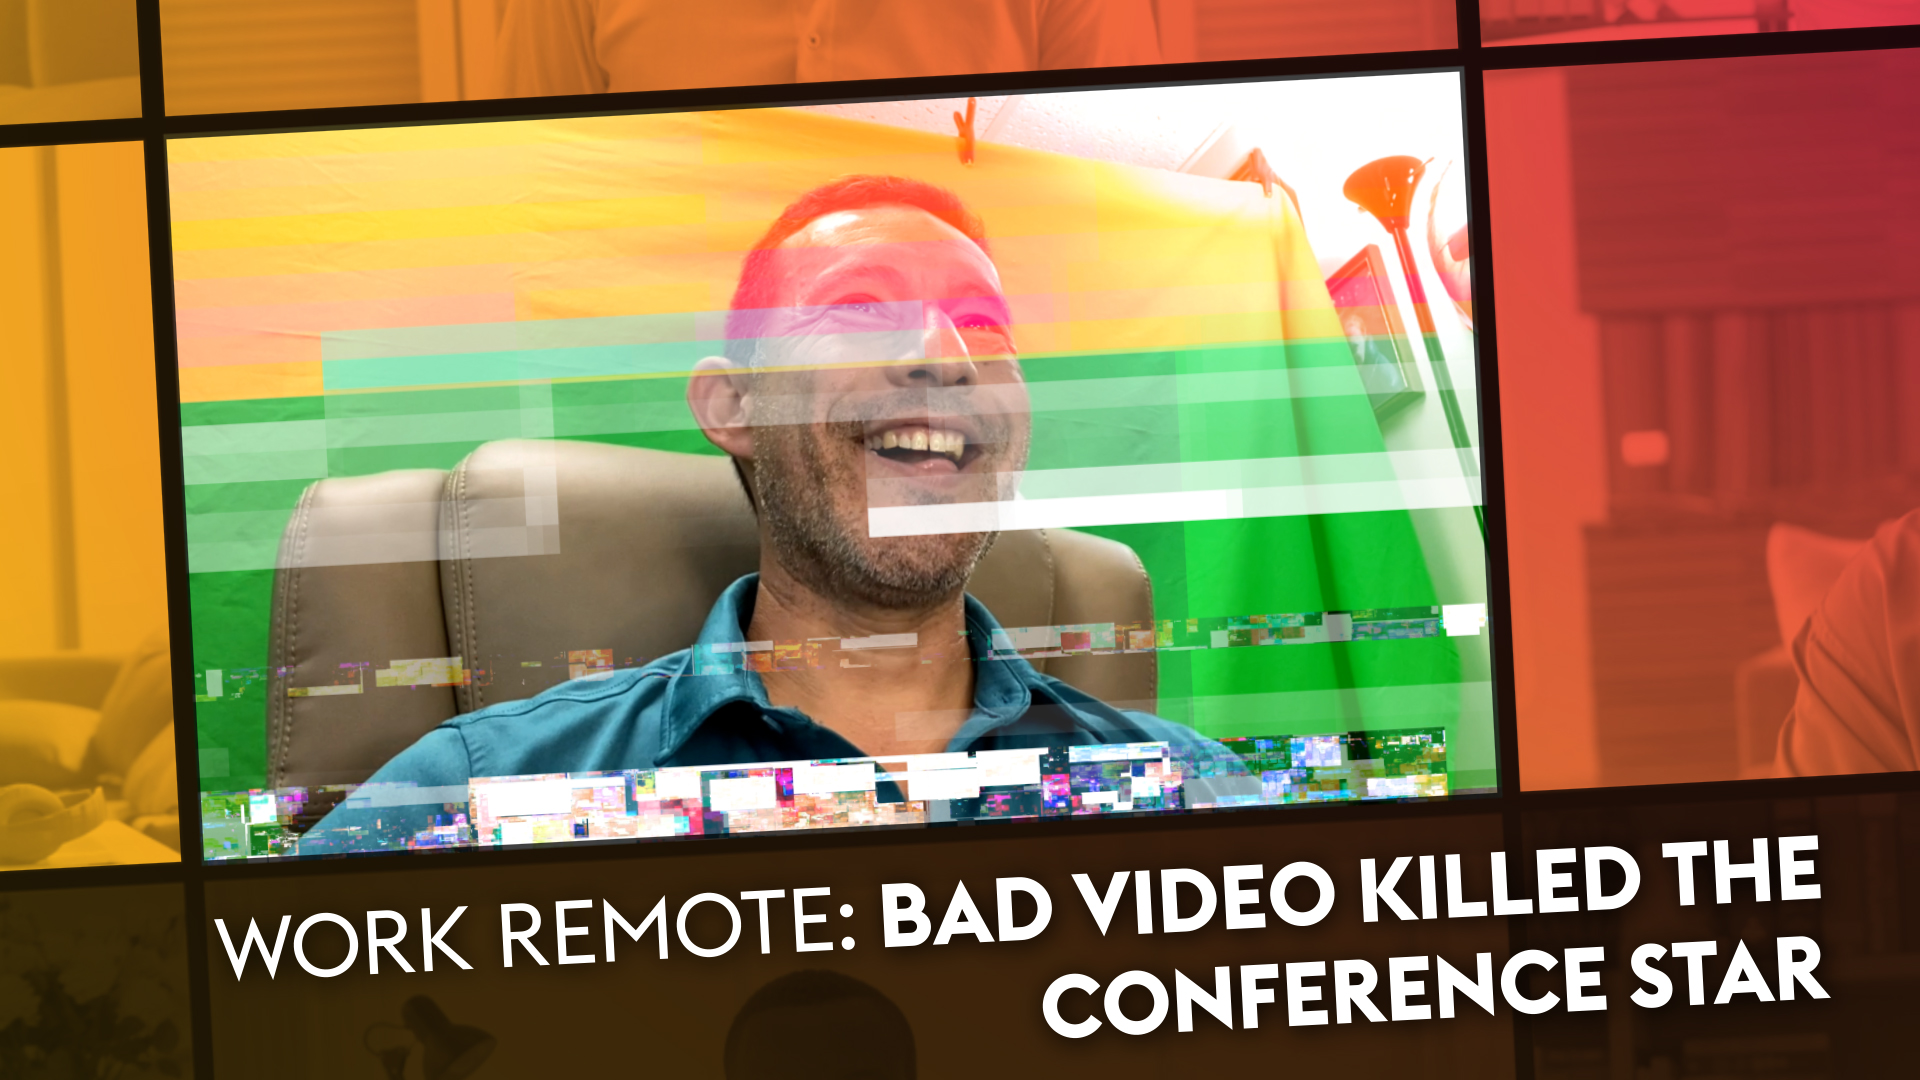 Bad Video Killed the Conference Star | AVIXA